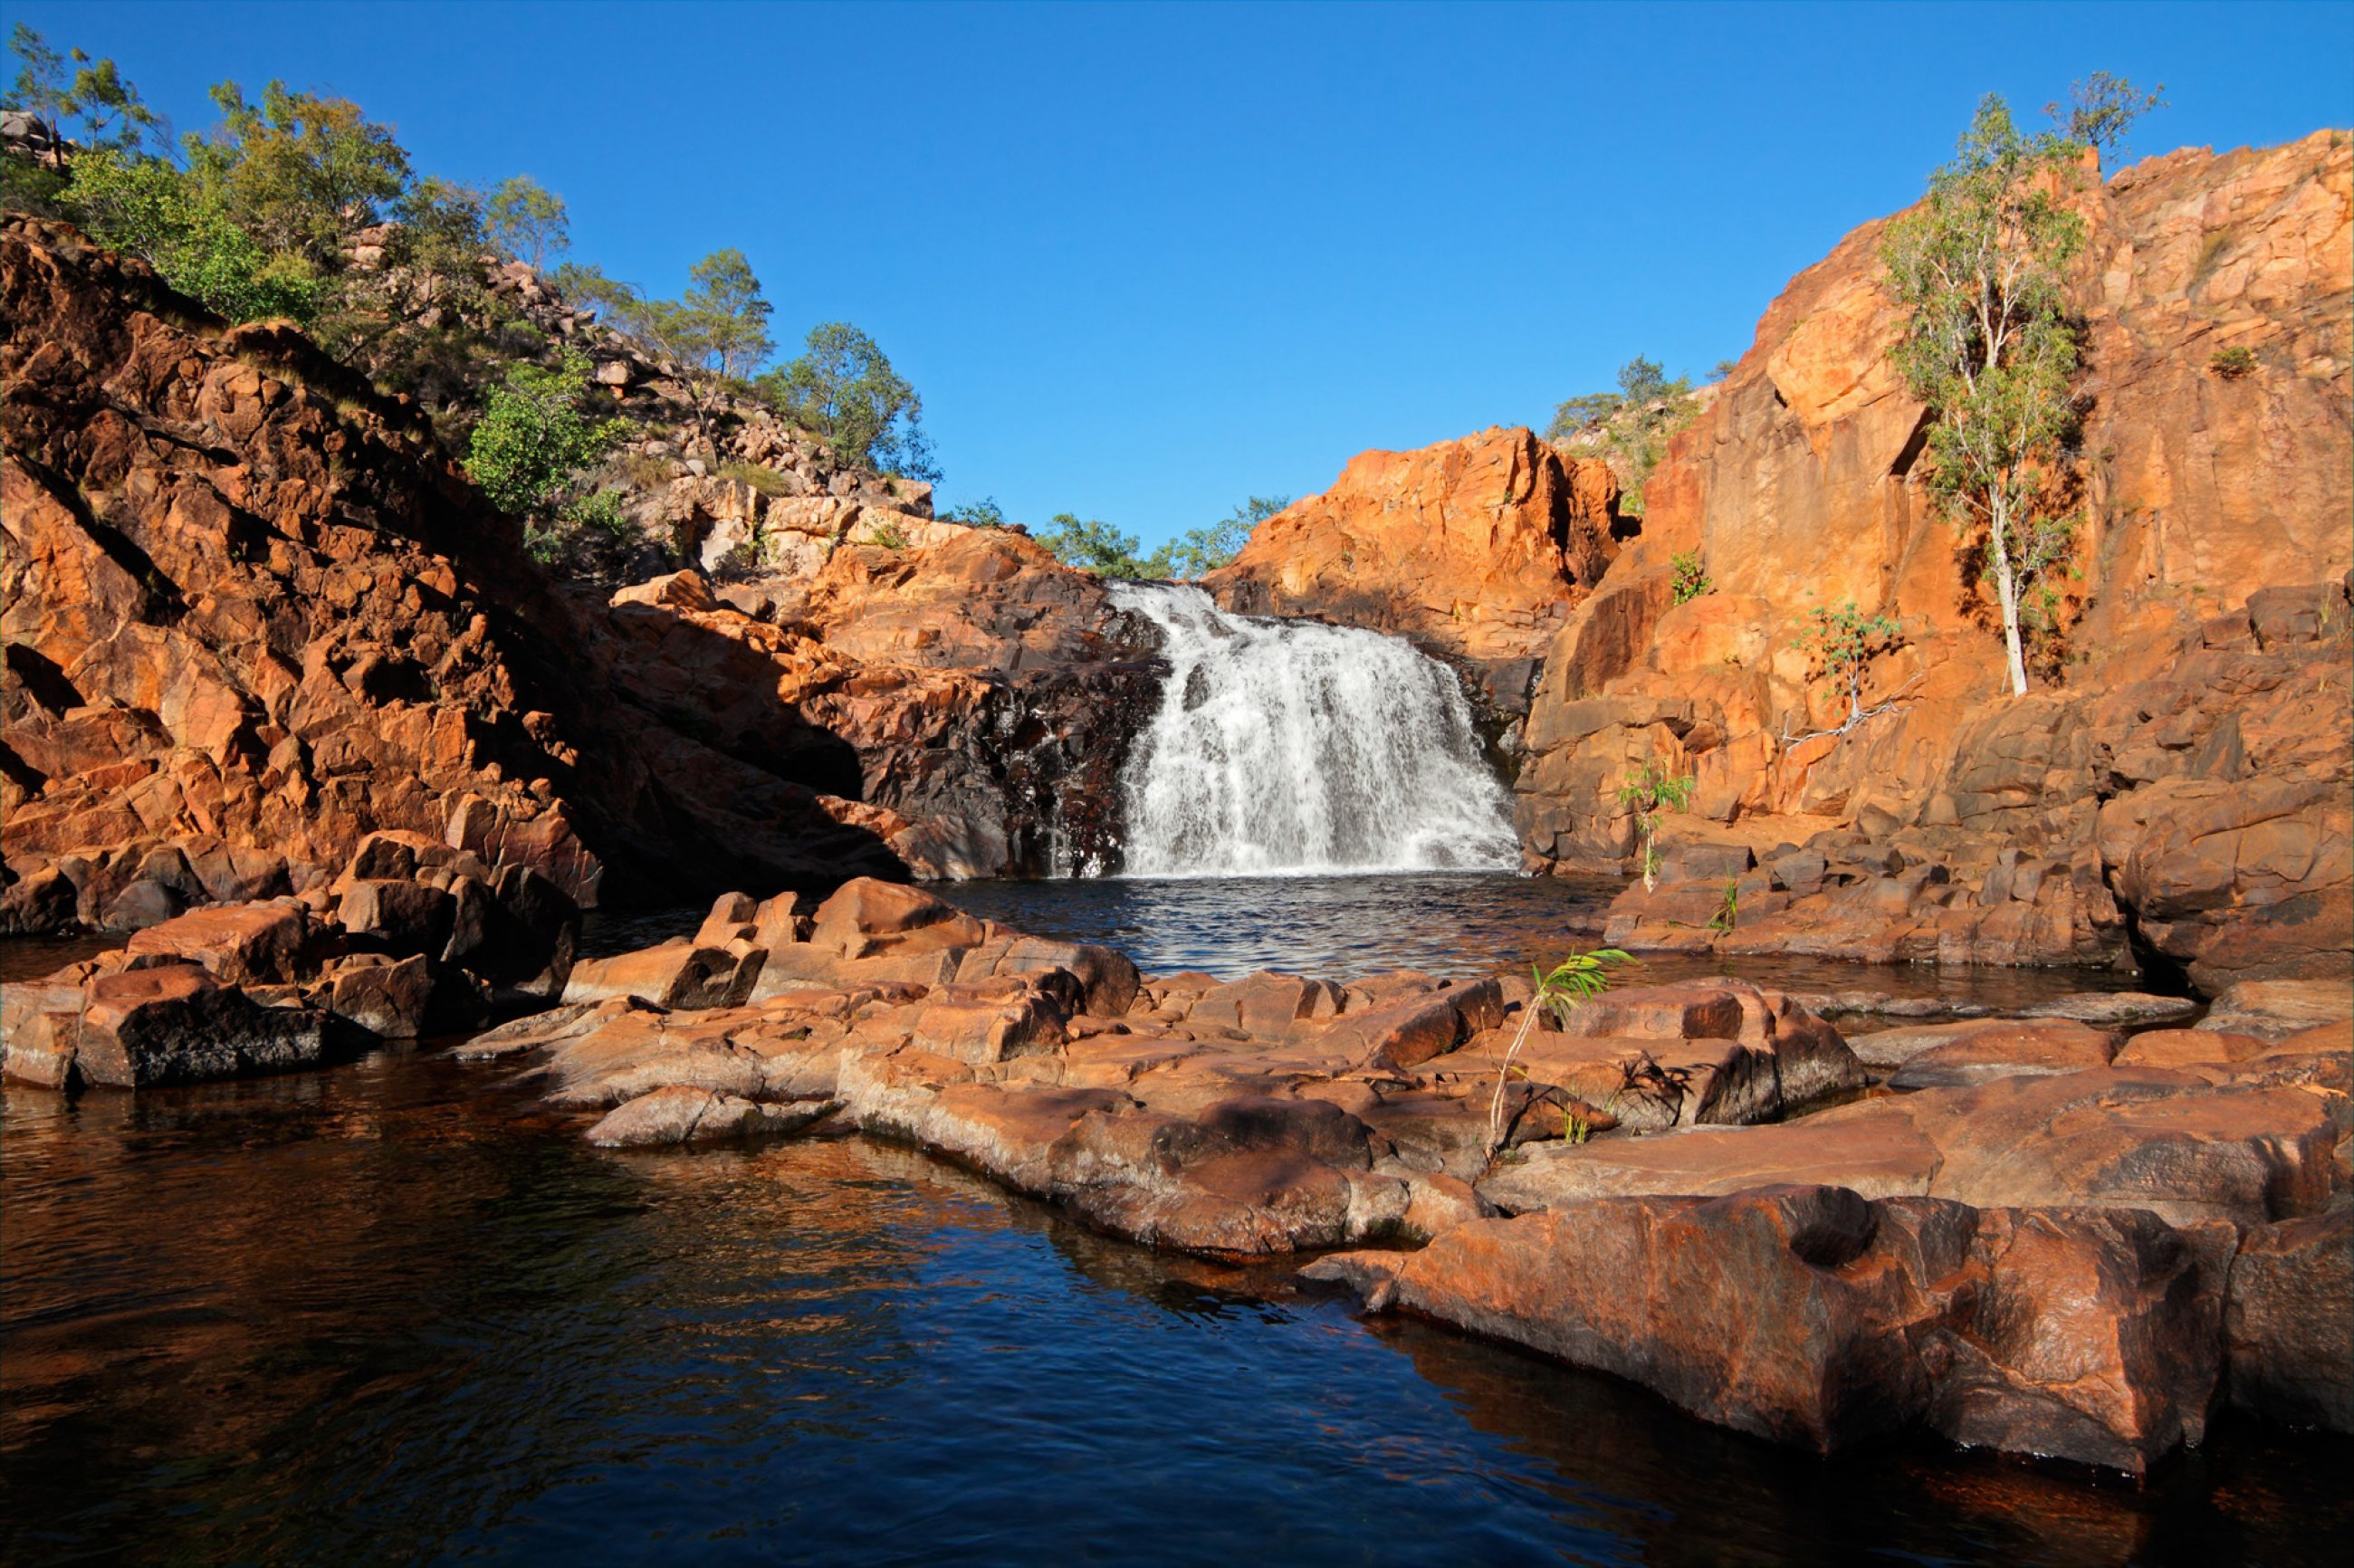 https://bubo.sk/uploads/galleries/5028/kakadu-australia-shutterstock-126777269.jpg